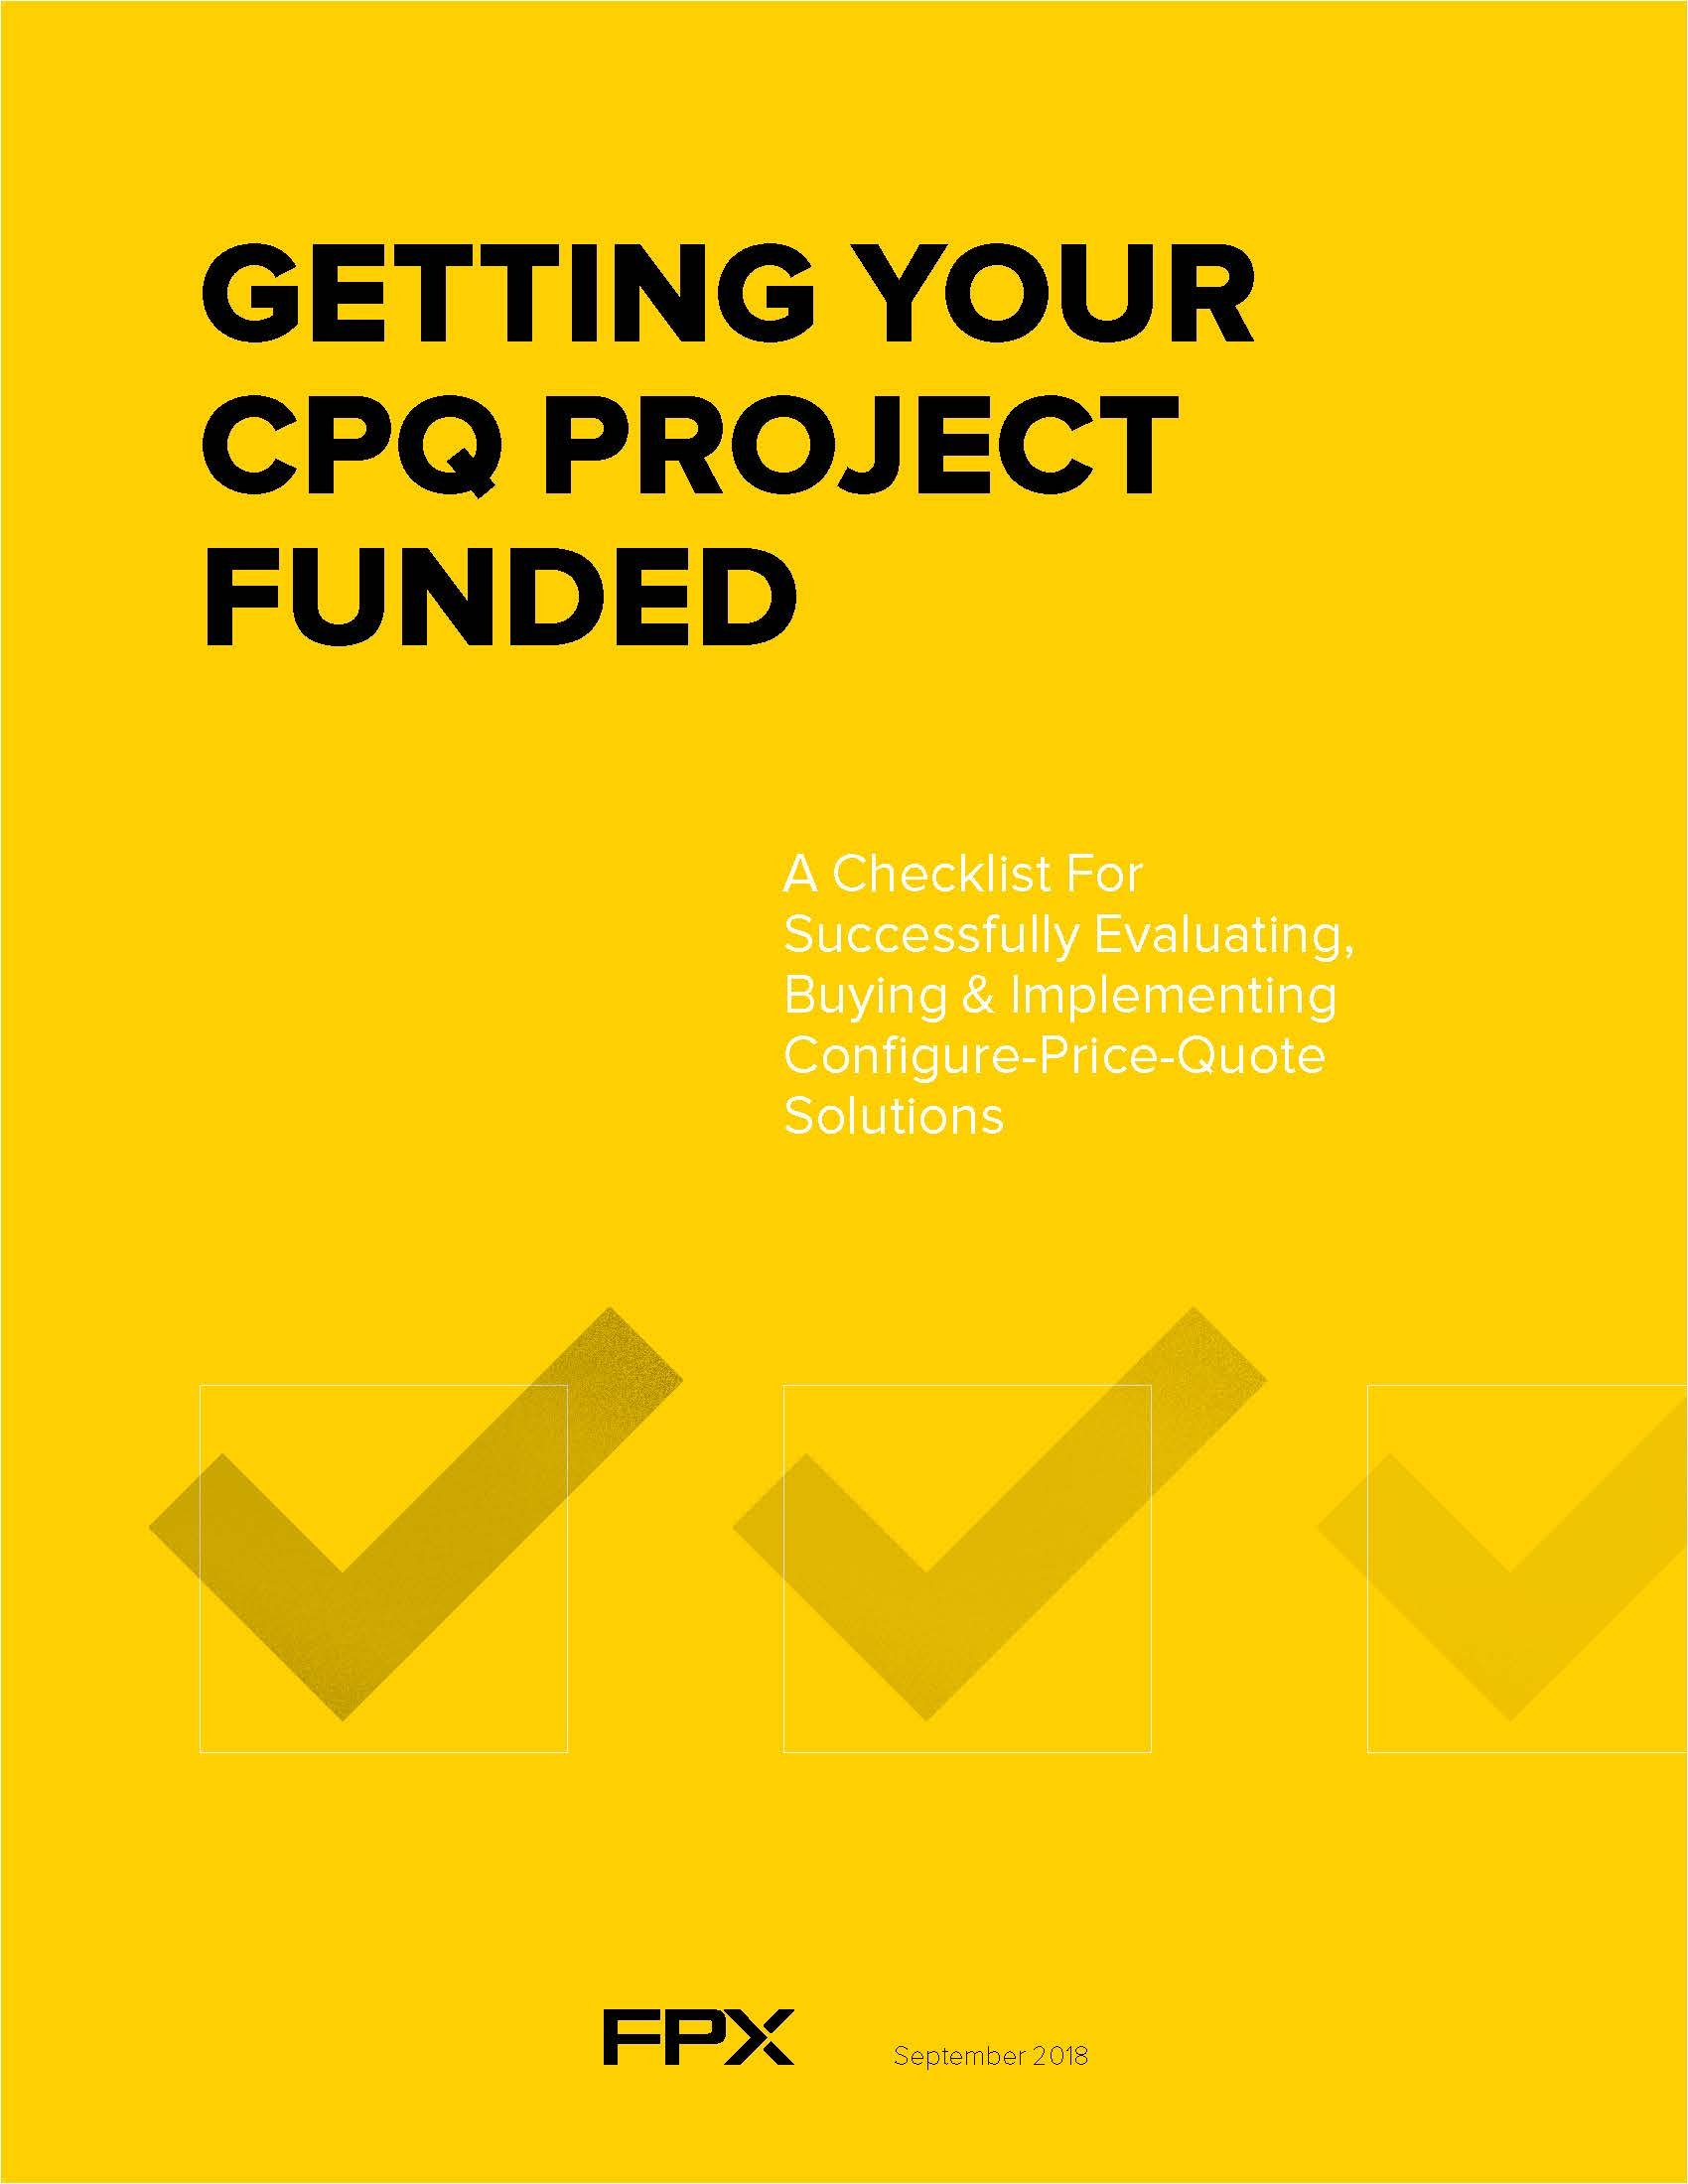 Getting Your CPQ Project Funded_Cover image